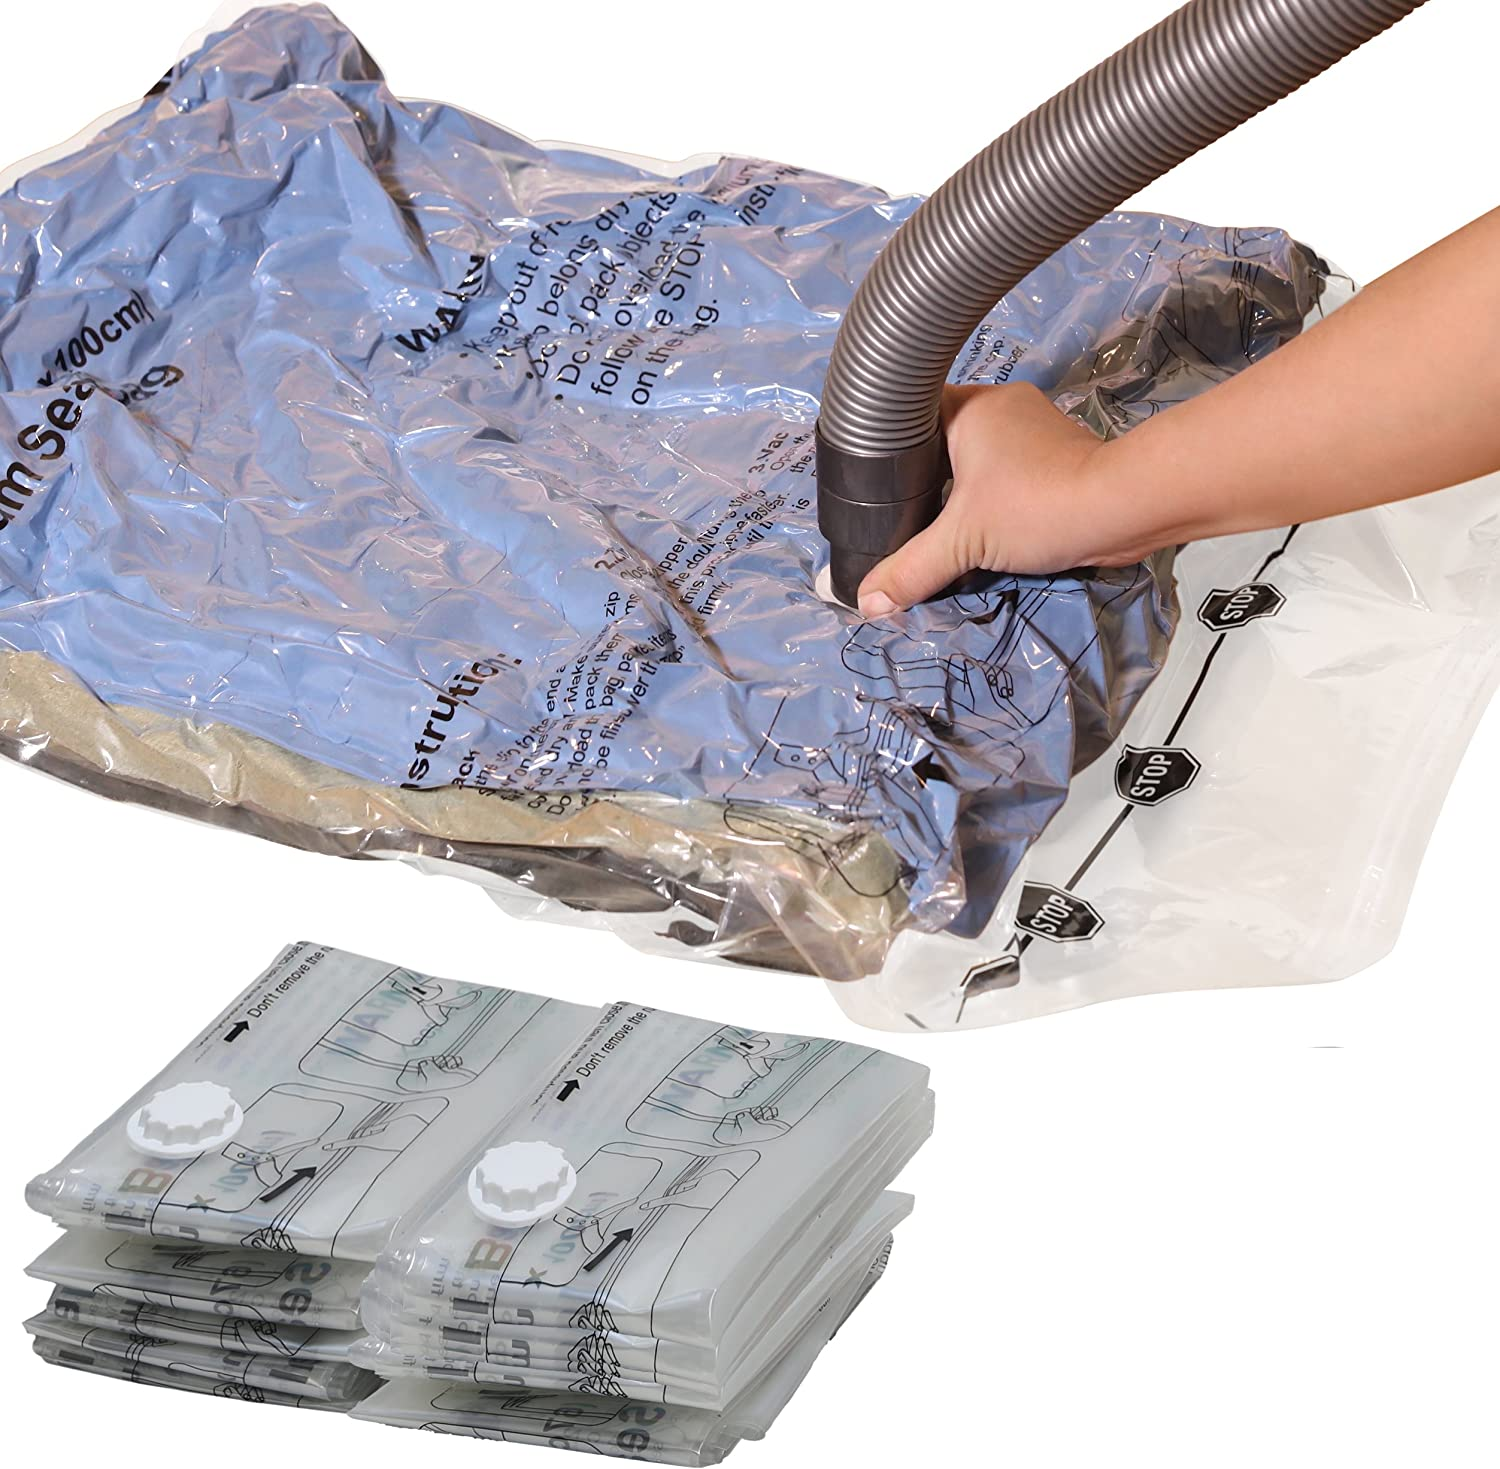 Simple Houseware 10 Vacuum Storage Bags to Space Saver for Bedding, Pillows, Towel, Blanket, Clothes Bags (5 x Extra Large, 5 x Large)